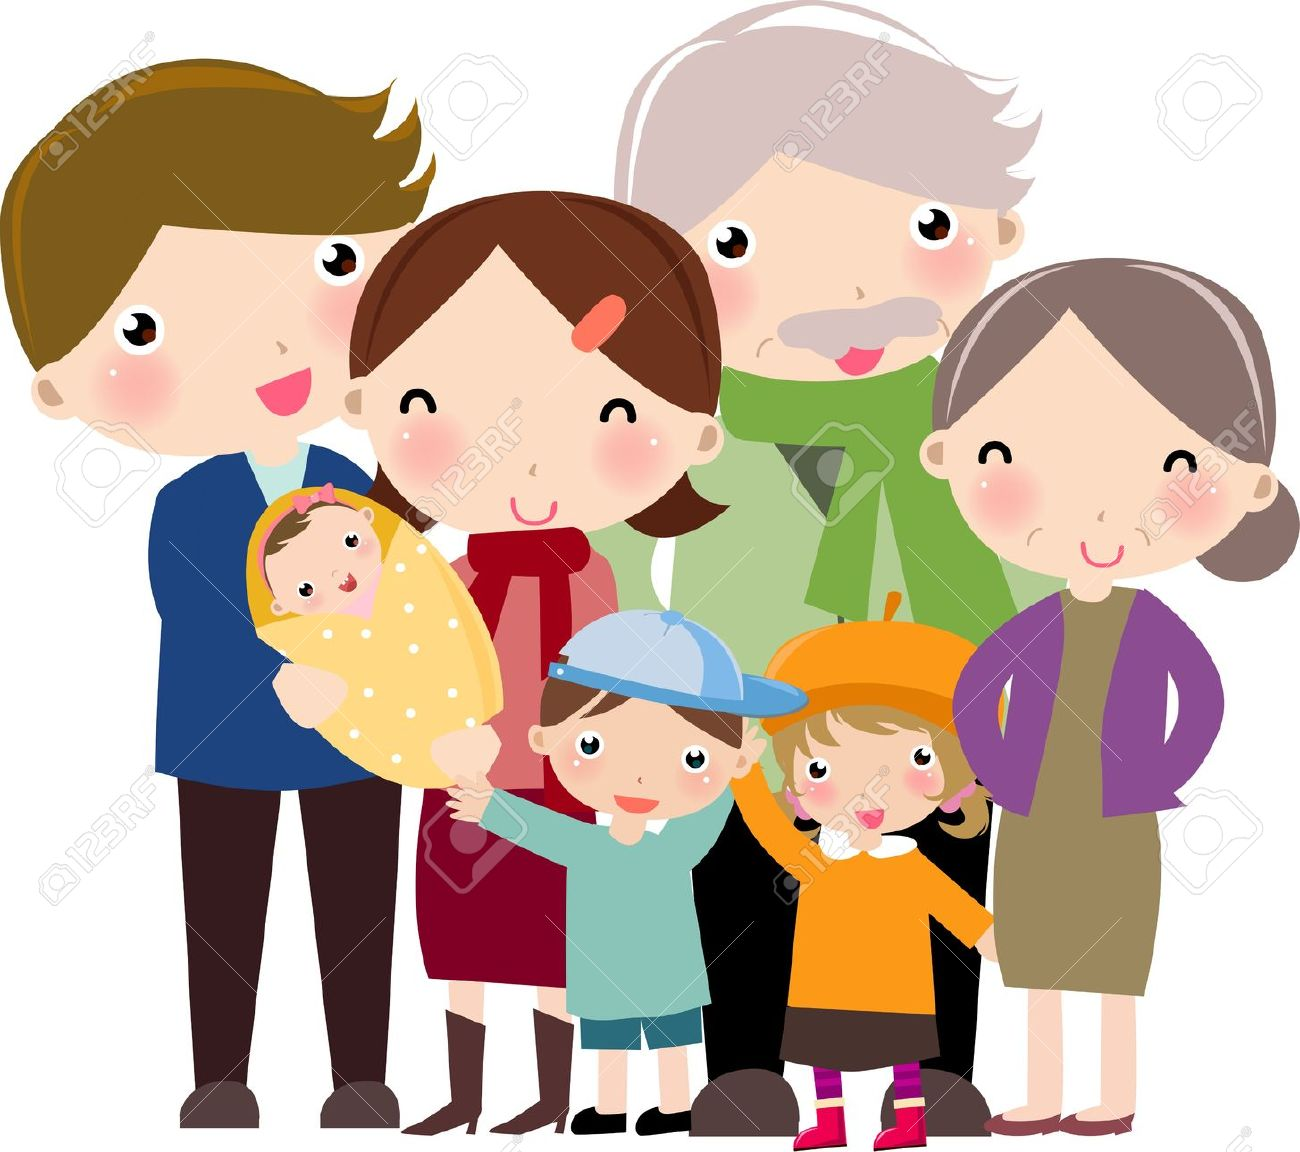 Clipart extended families.